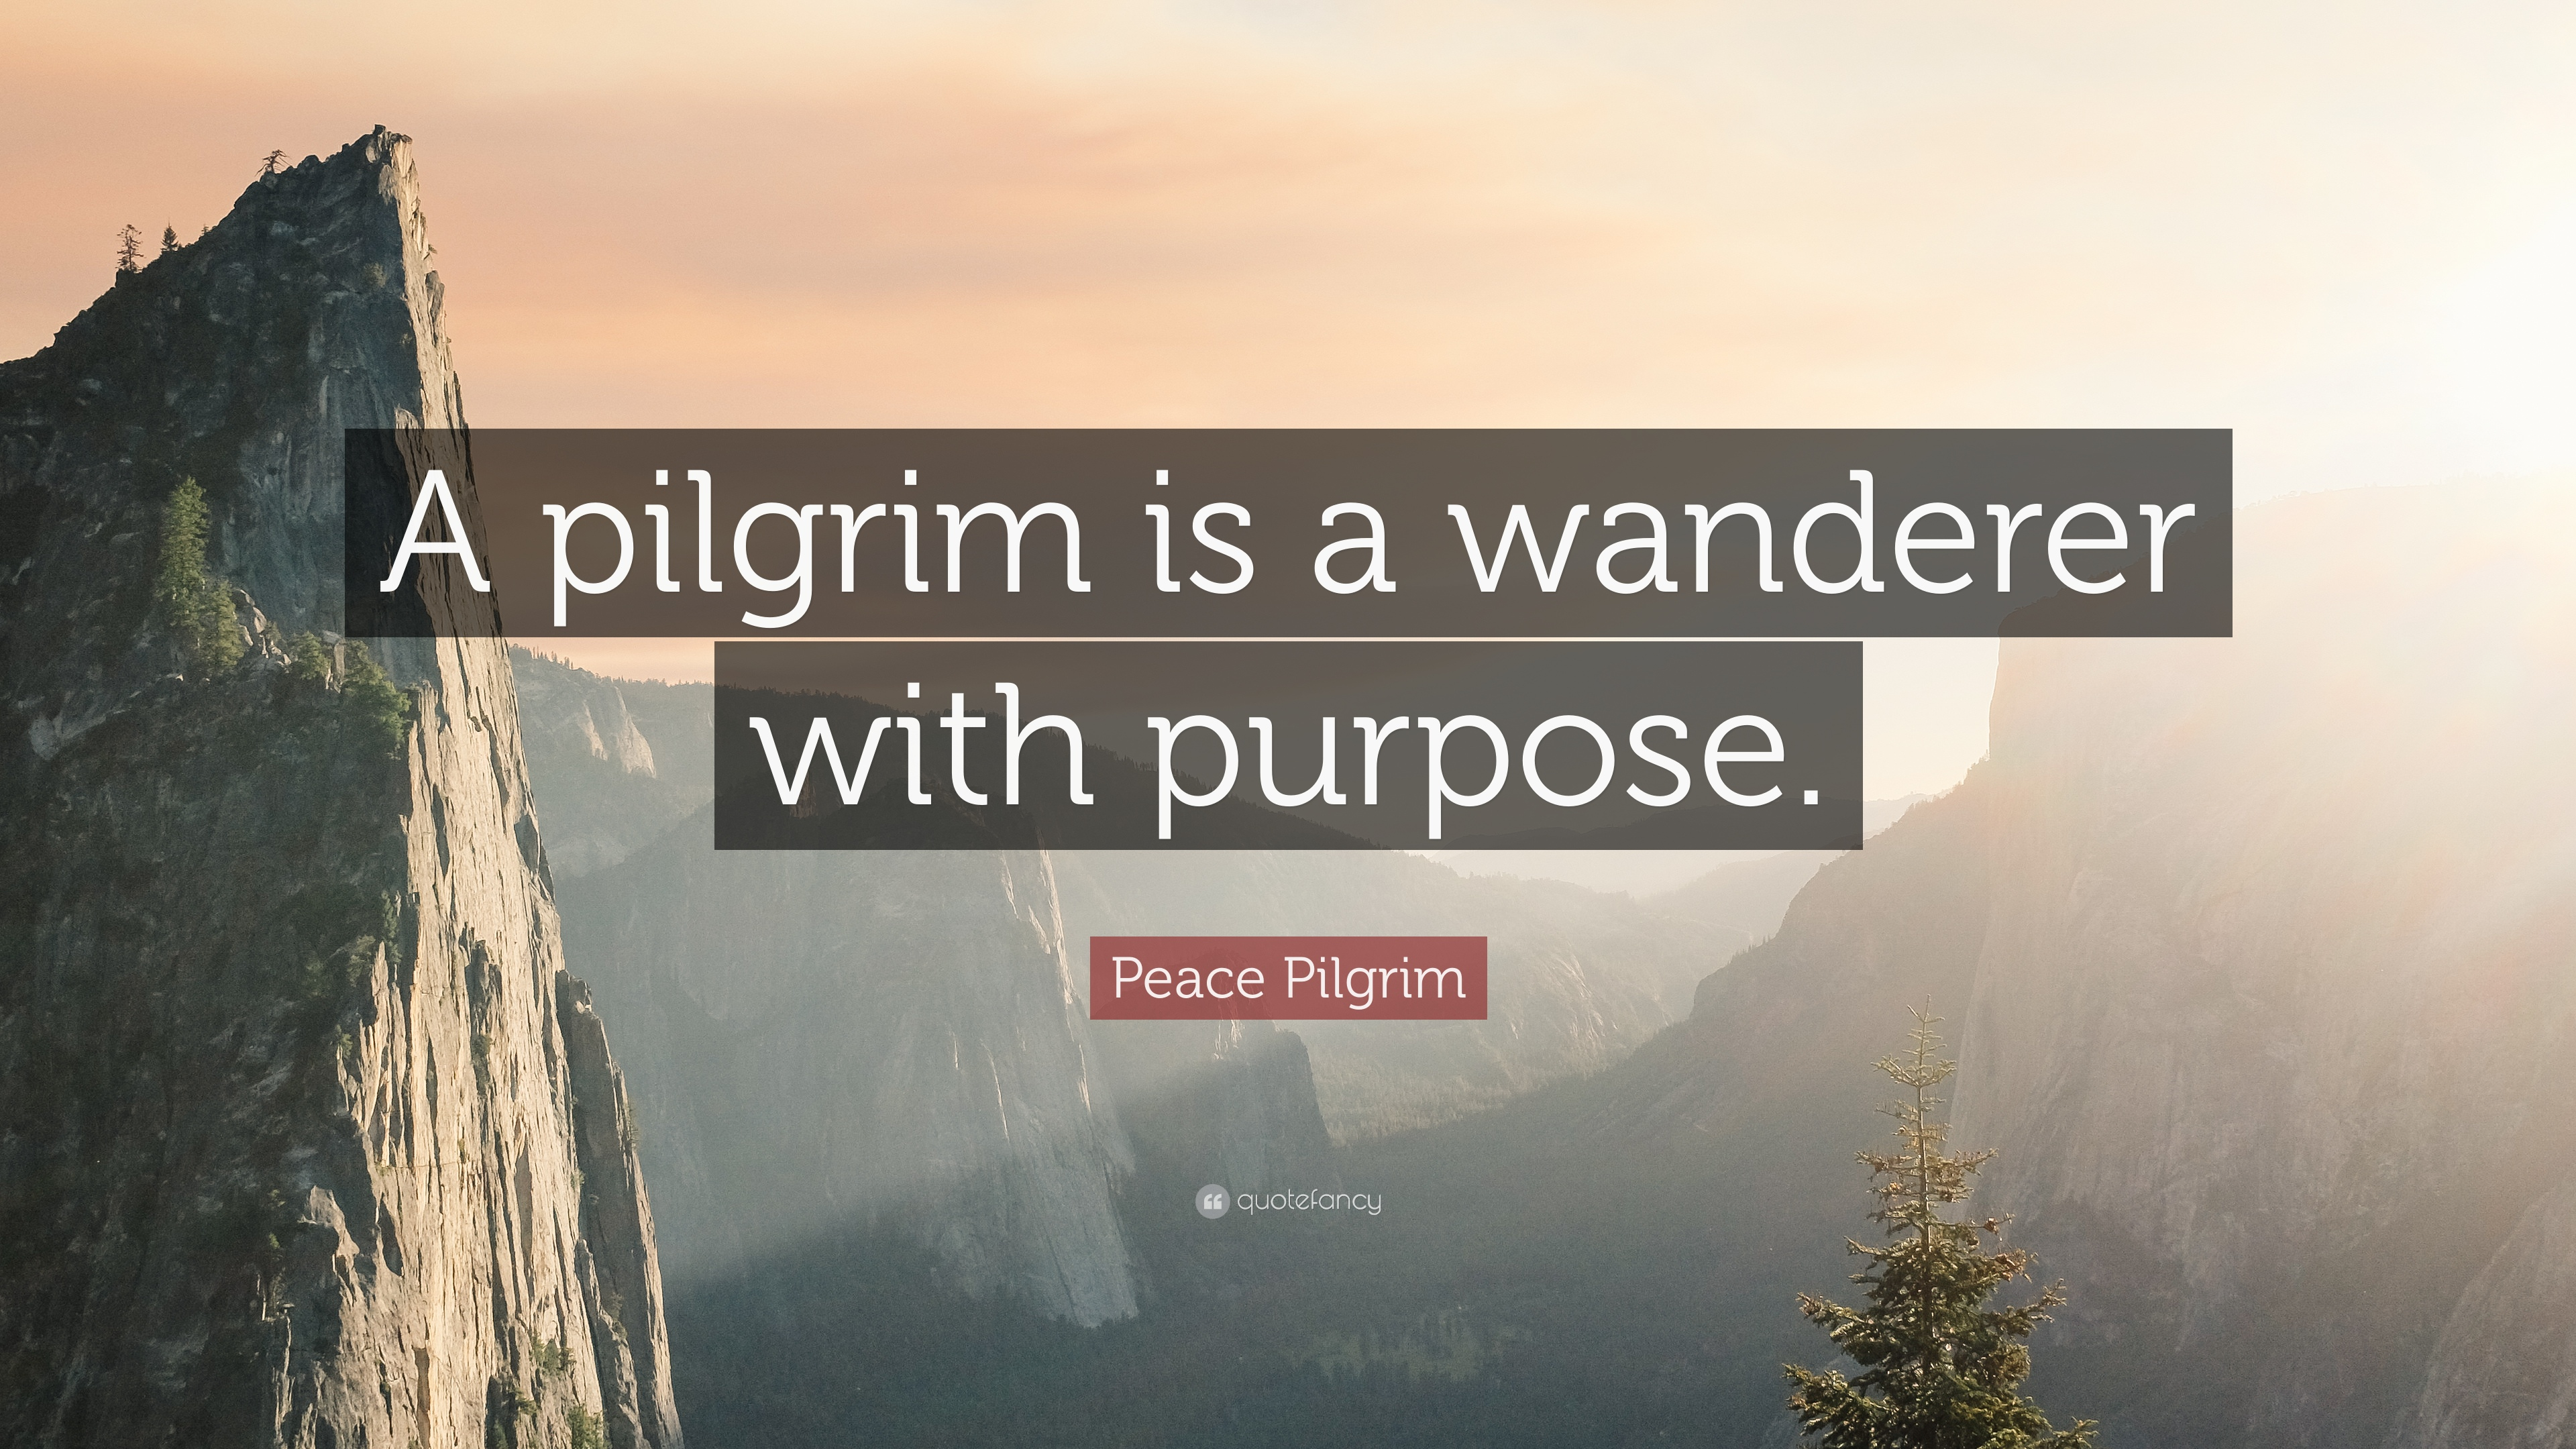 a pilgrim is a wanderer with purpose